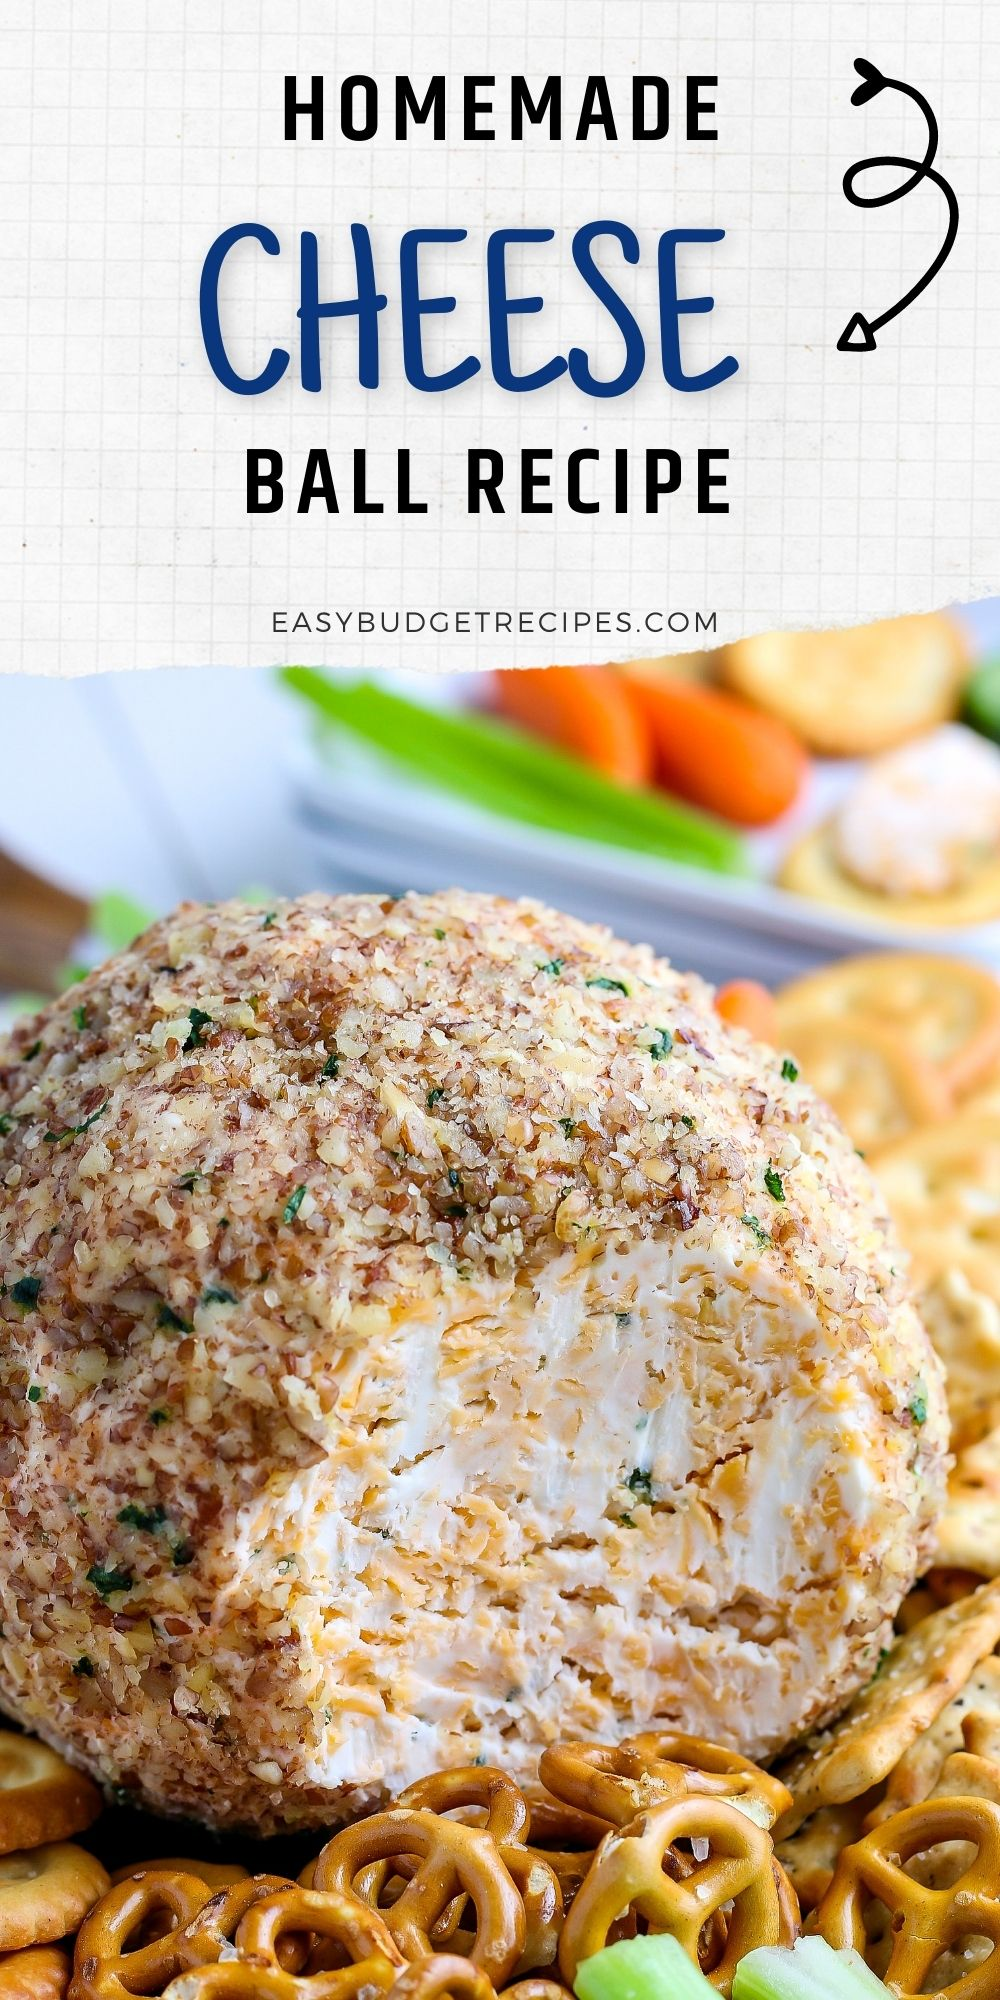 This Classic Cheese Ballrecipe is perfect for any occasion, and it's so easy to make. Everyone is going to want some of this rich and creamy homemade cheese ball recipe. via @easybudgetrecipes